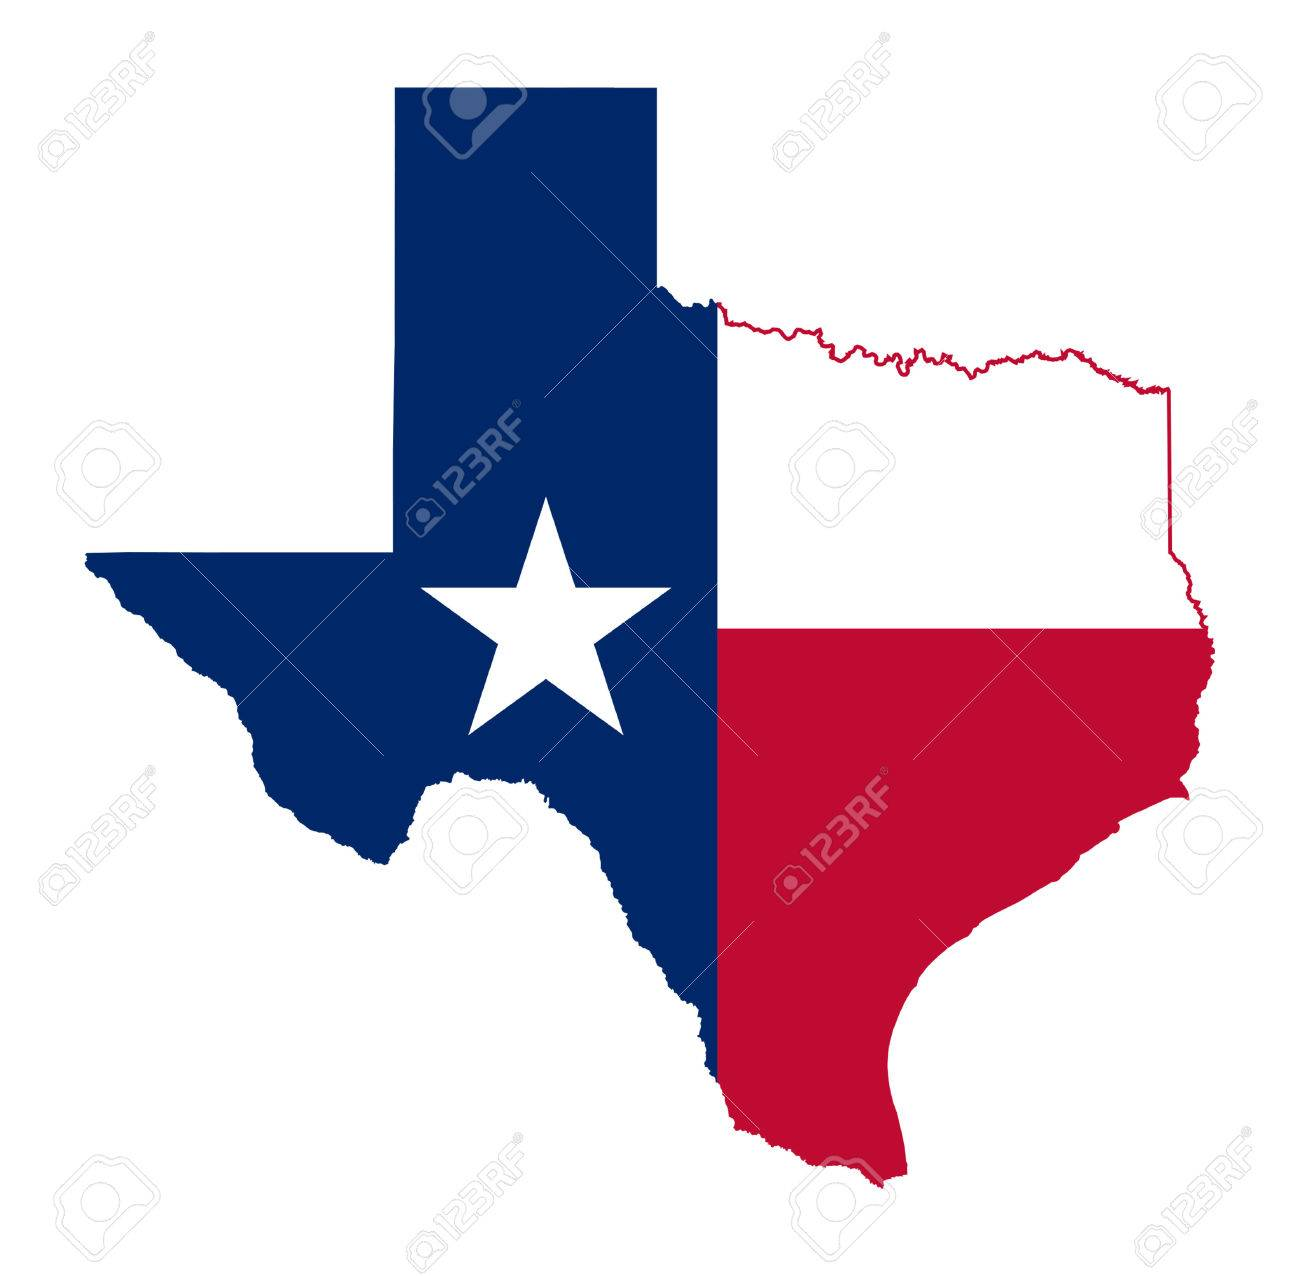 State of Texas flag map isolated on a white background, U.S.A. - 25983995